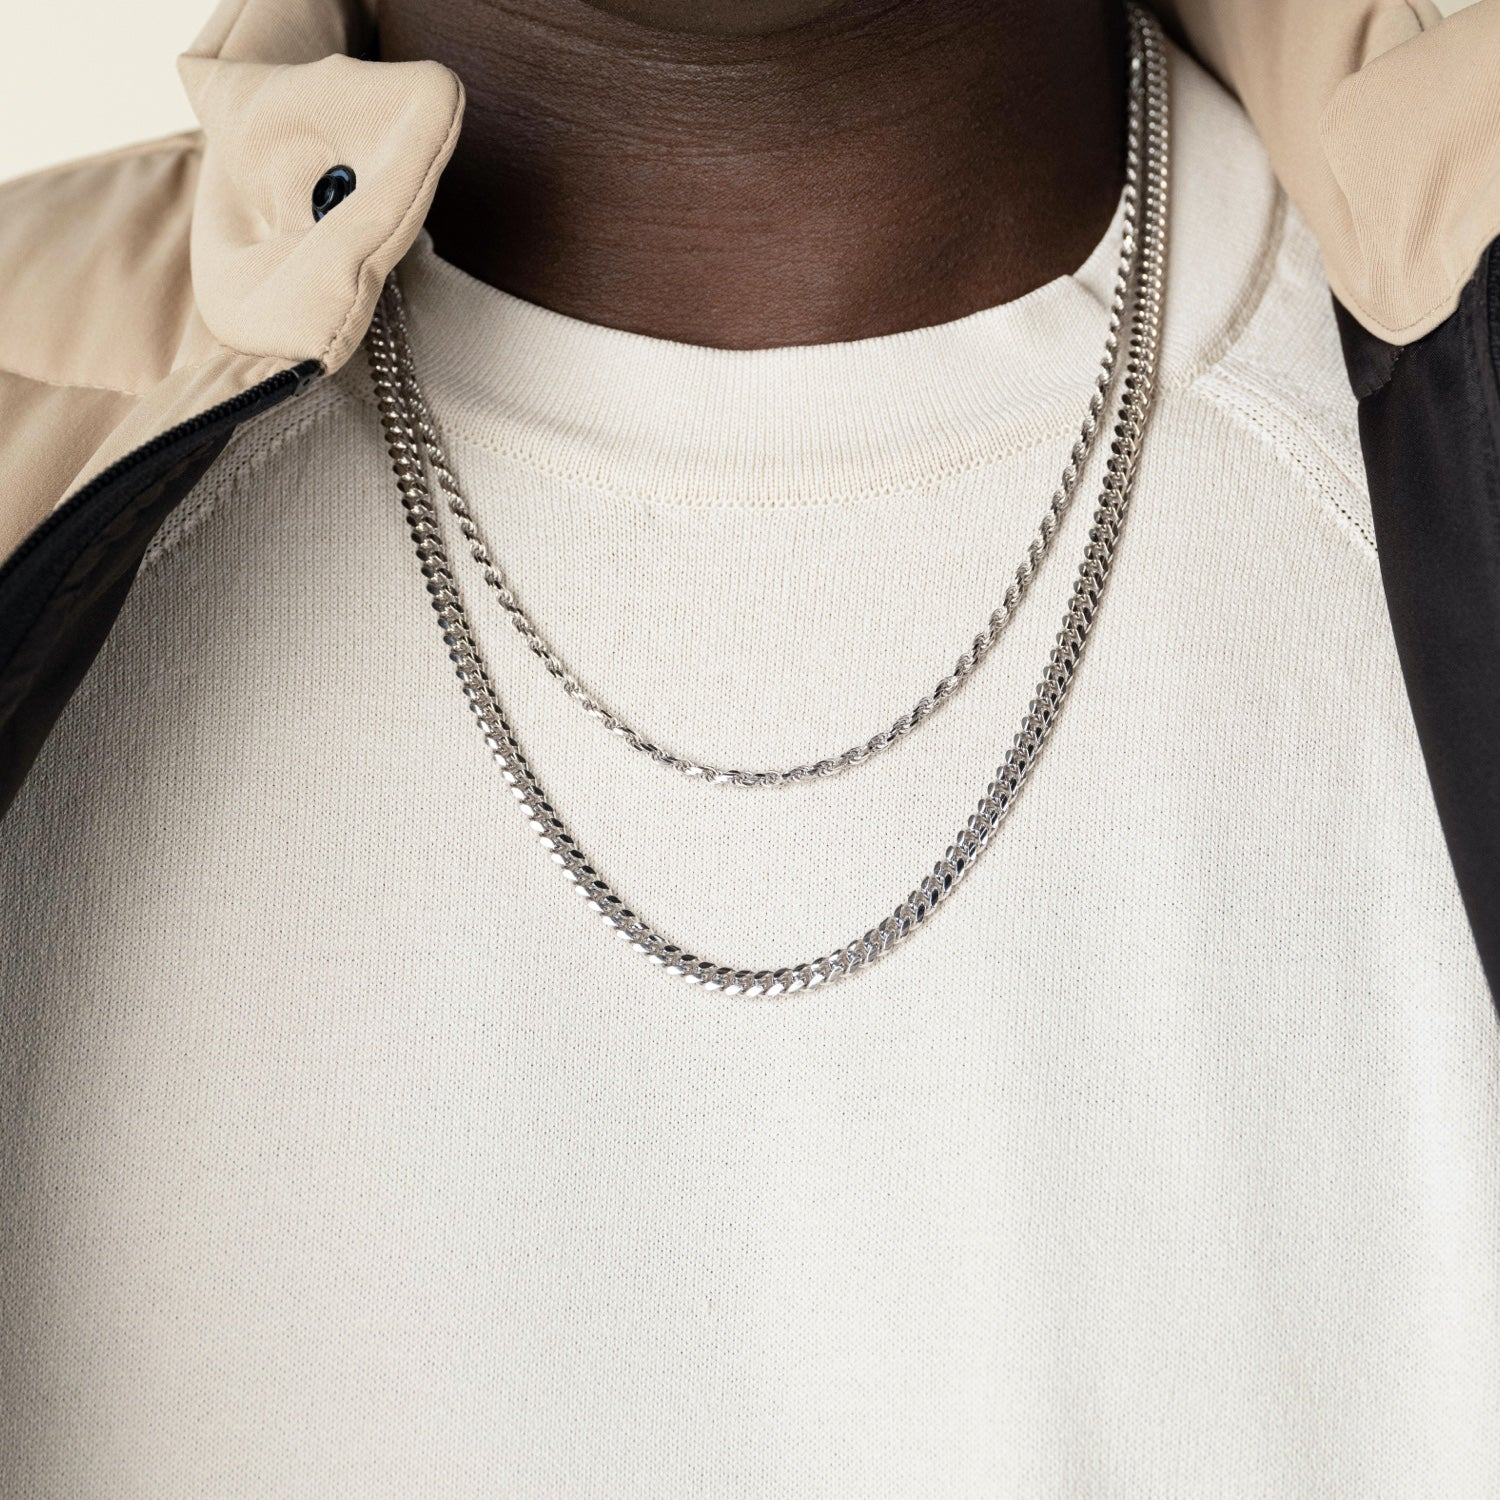 Rope + Cuban Link Chain StackImage